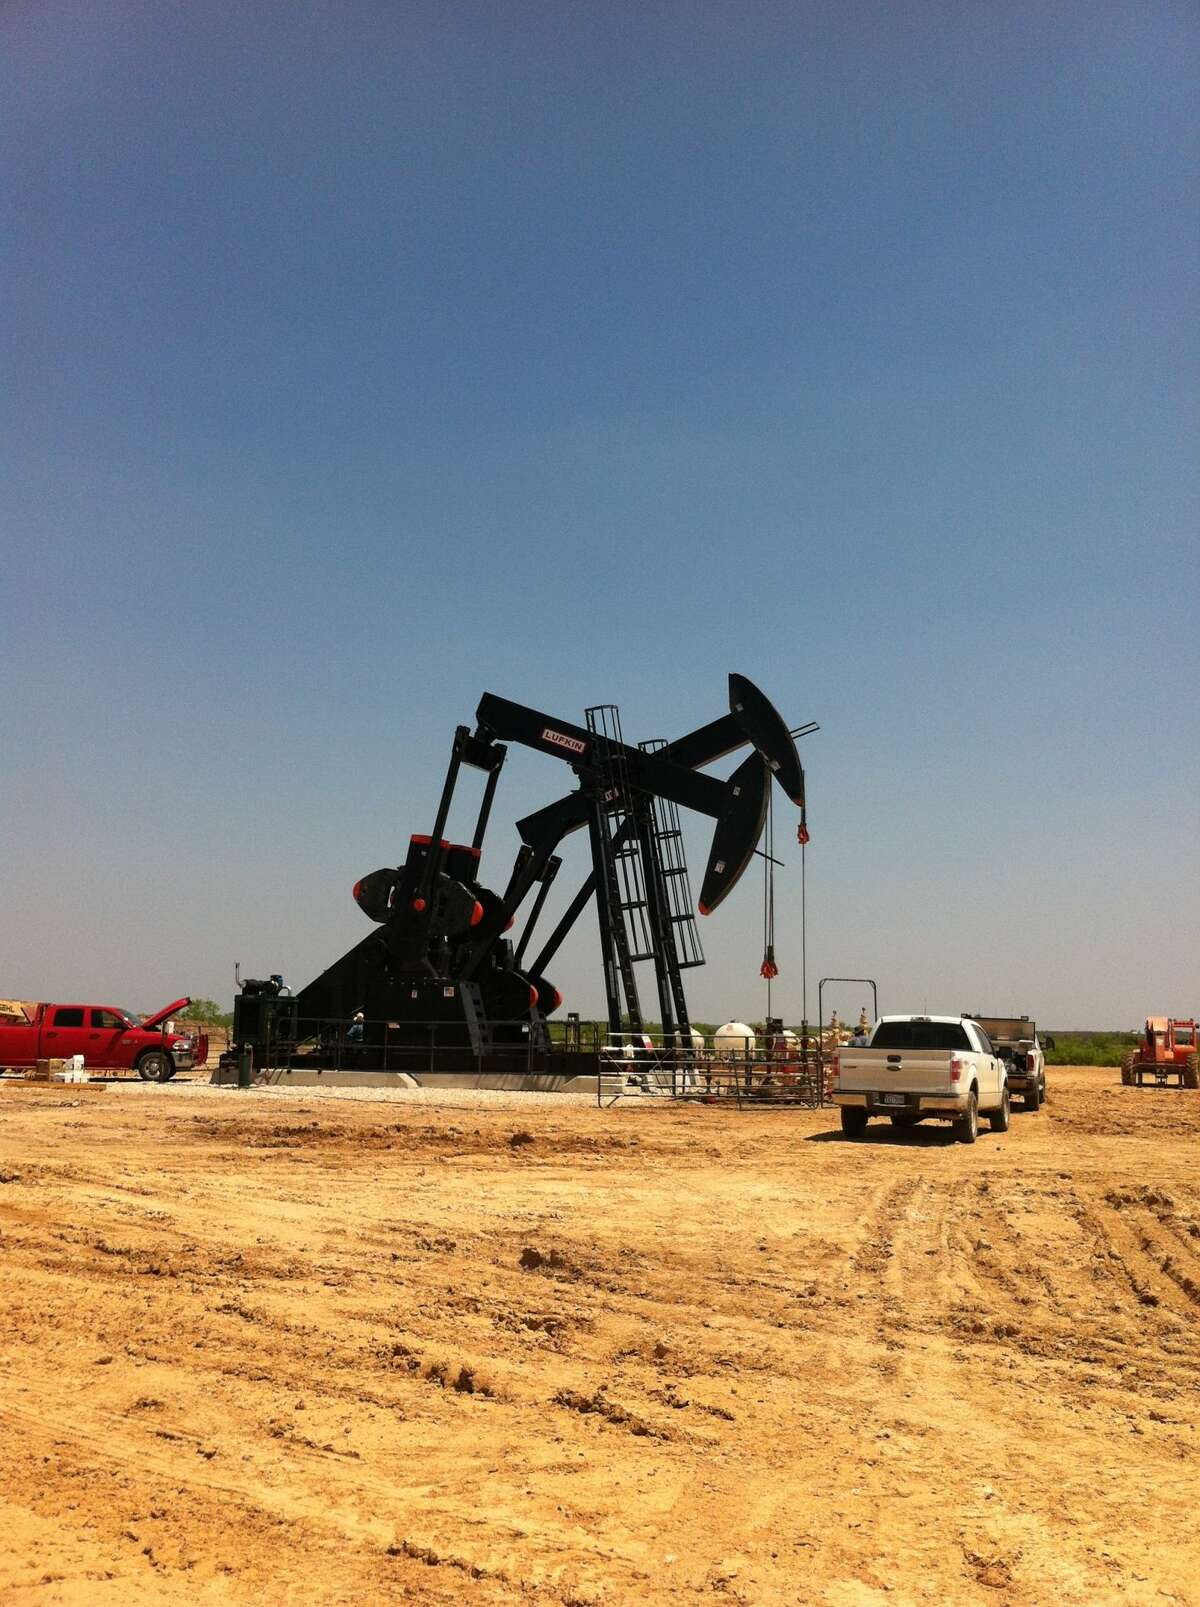 A Carrizo well is seen in La Salle County. Analysts see Callon Petroleum's acquisition of Carrizo Oil & Gas as an indication that consolidation in the oil patch is happening at multiple levels. Carrizo brings Eagle Ford assets to the table, but some analysts think Callon may monetize those assets and return to its status as a pure Permian player.